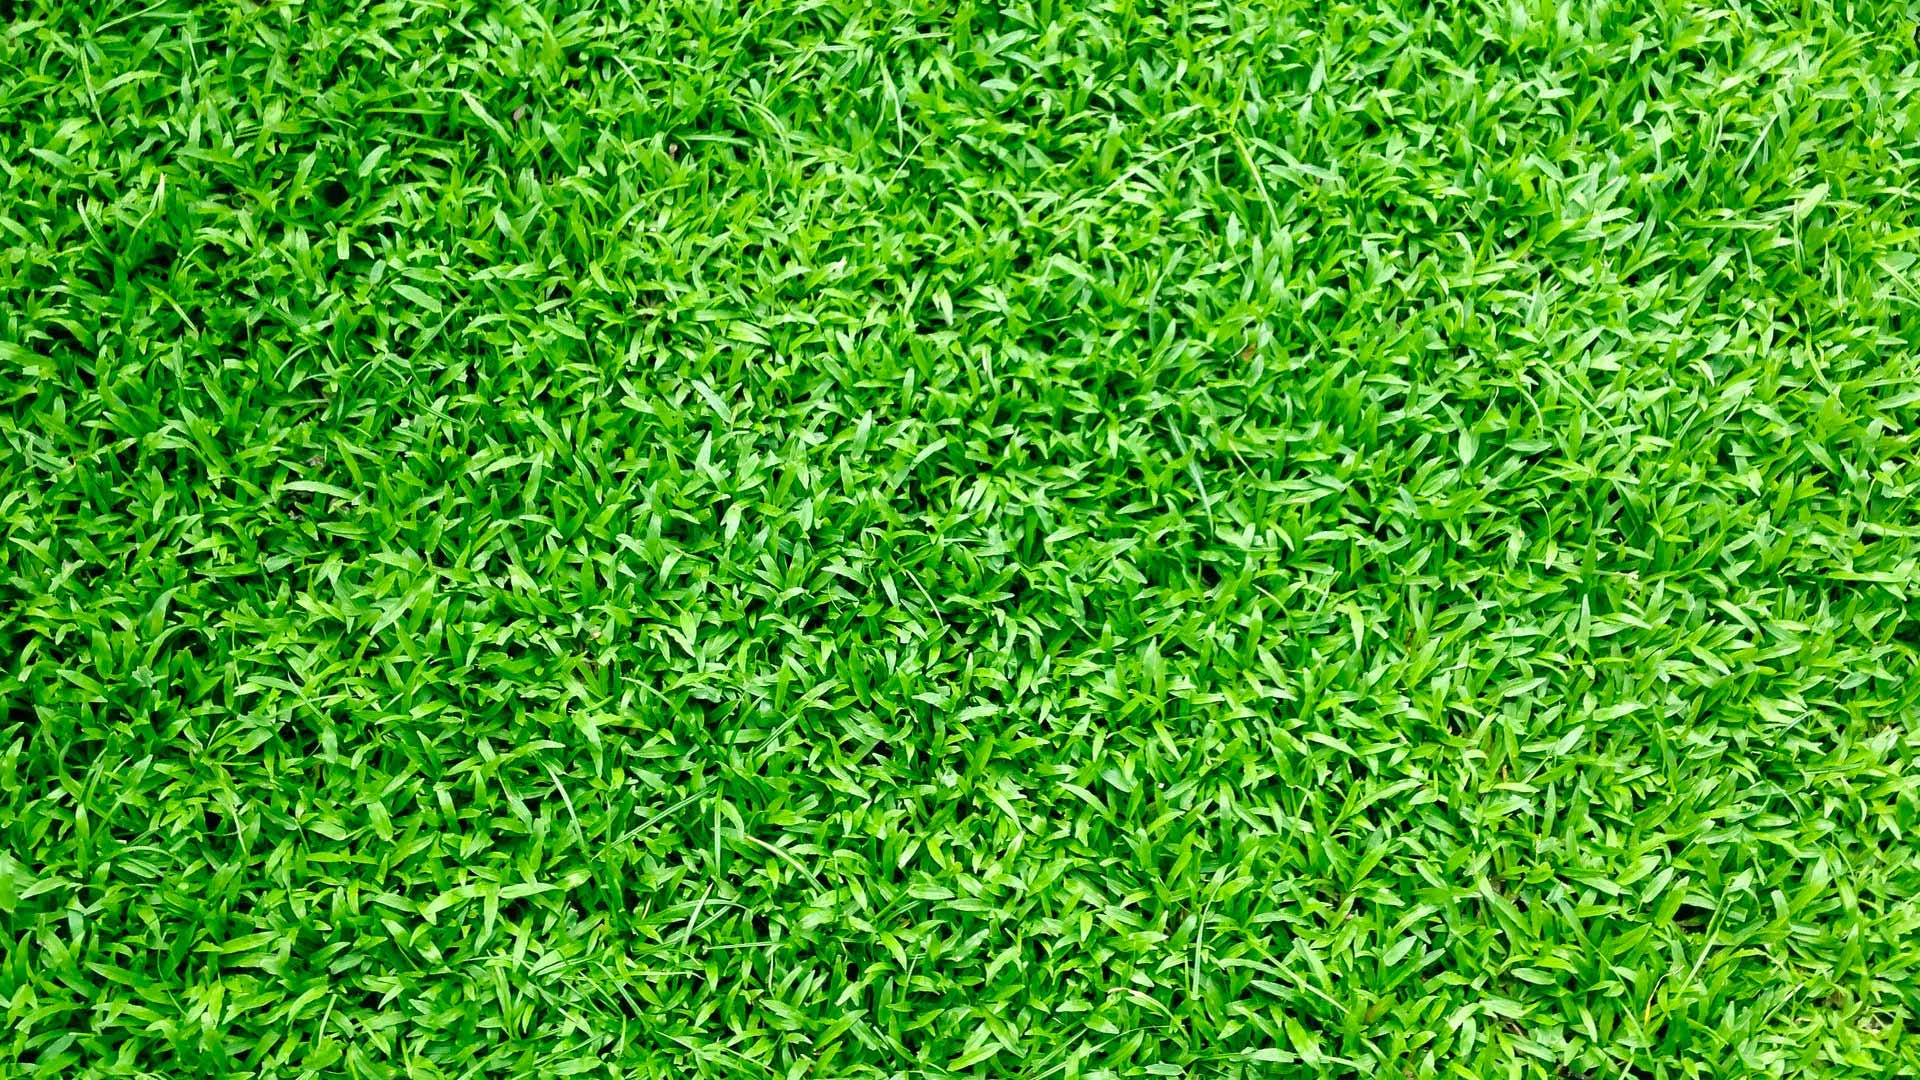 Green, healthy lawn grass in Woodstock, GA.